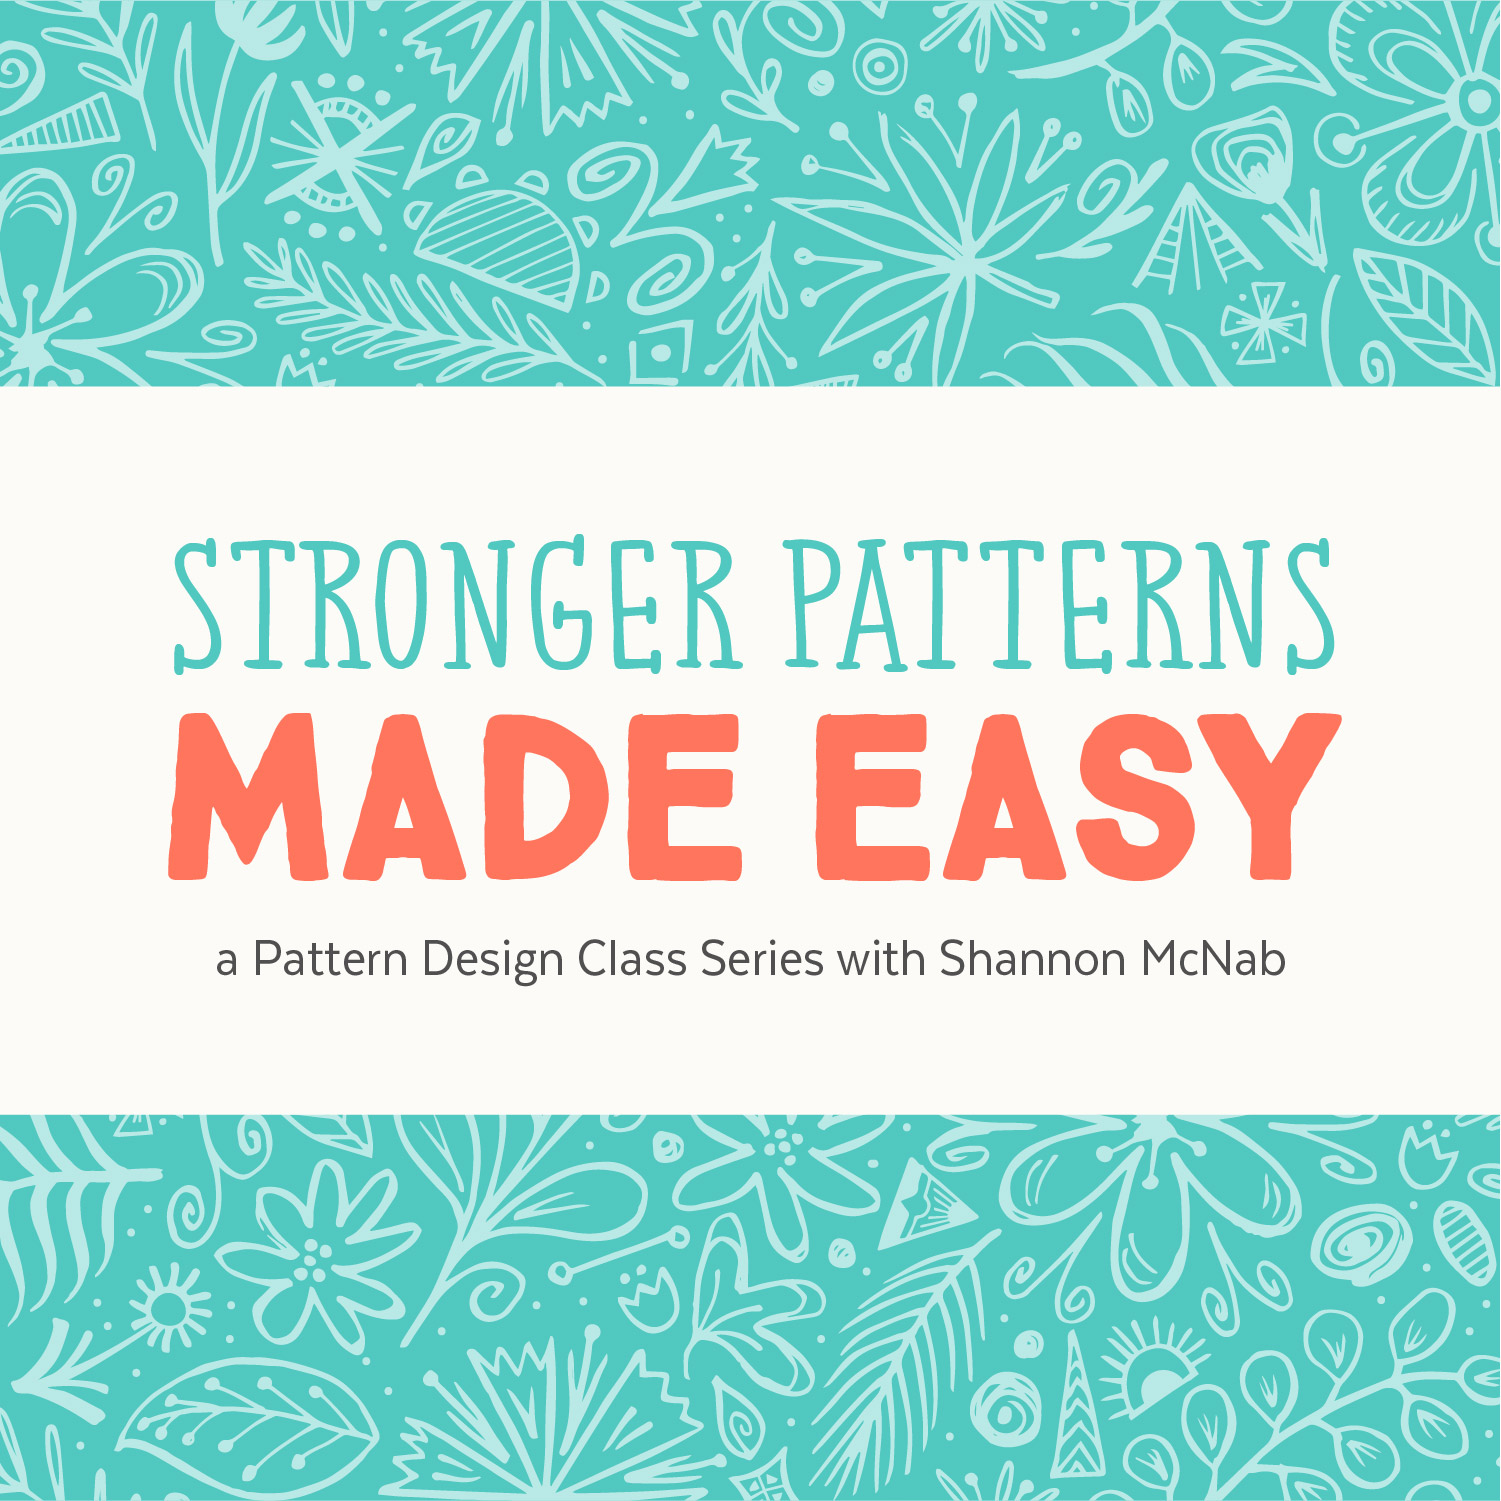 Stronger Patterns Made Easy: A Pattern Design Class Series with Shannon McNab